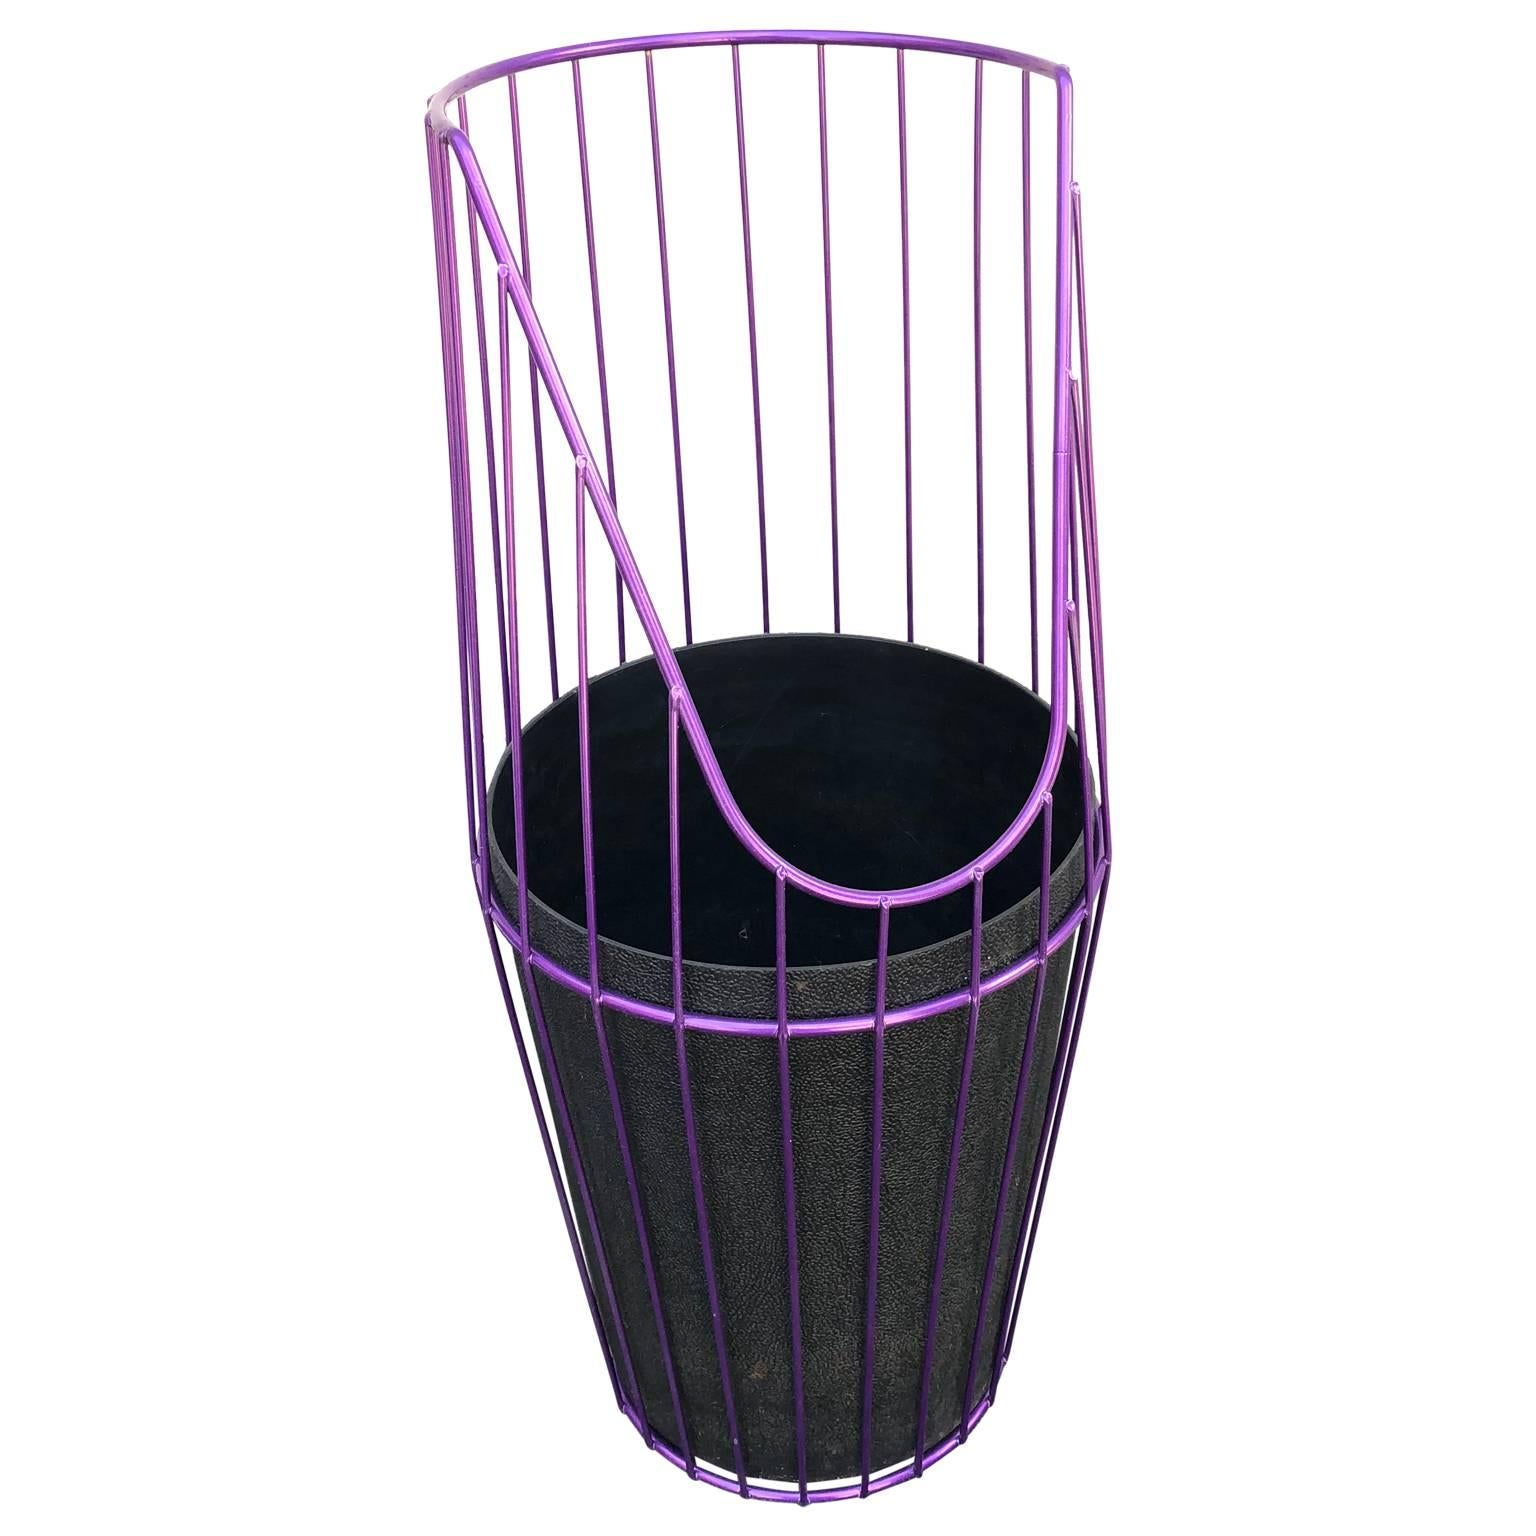 Metal Wire Wastebasket Painted Ultraviolet with Plastic Insert